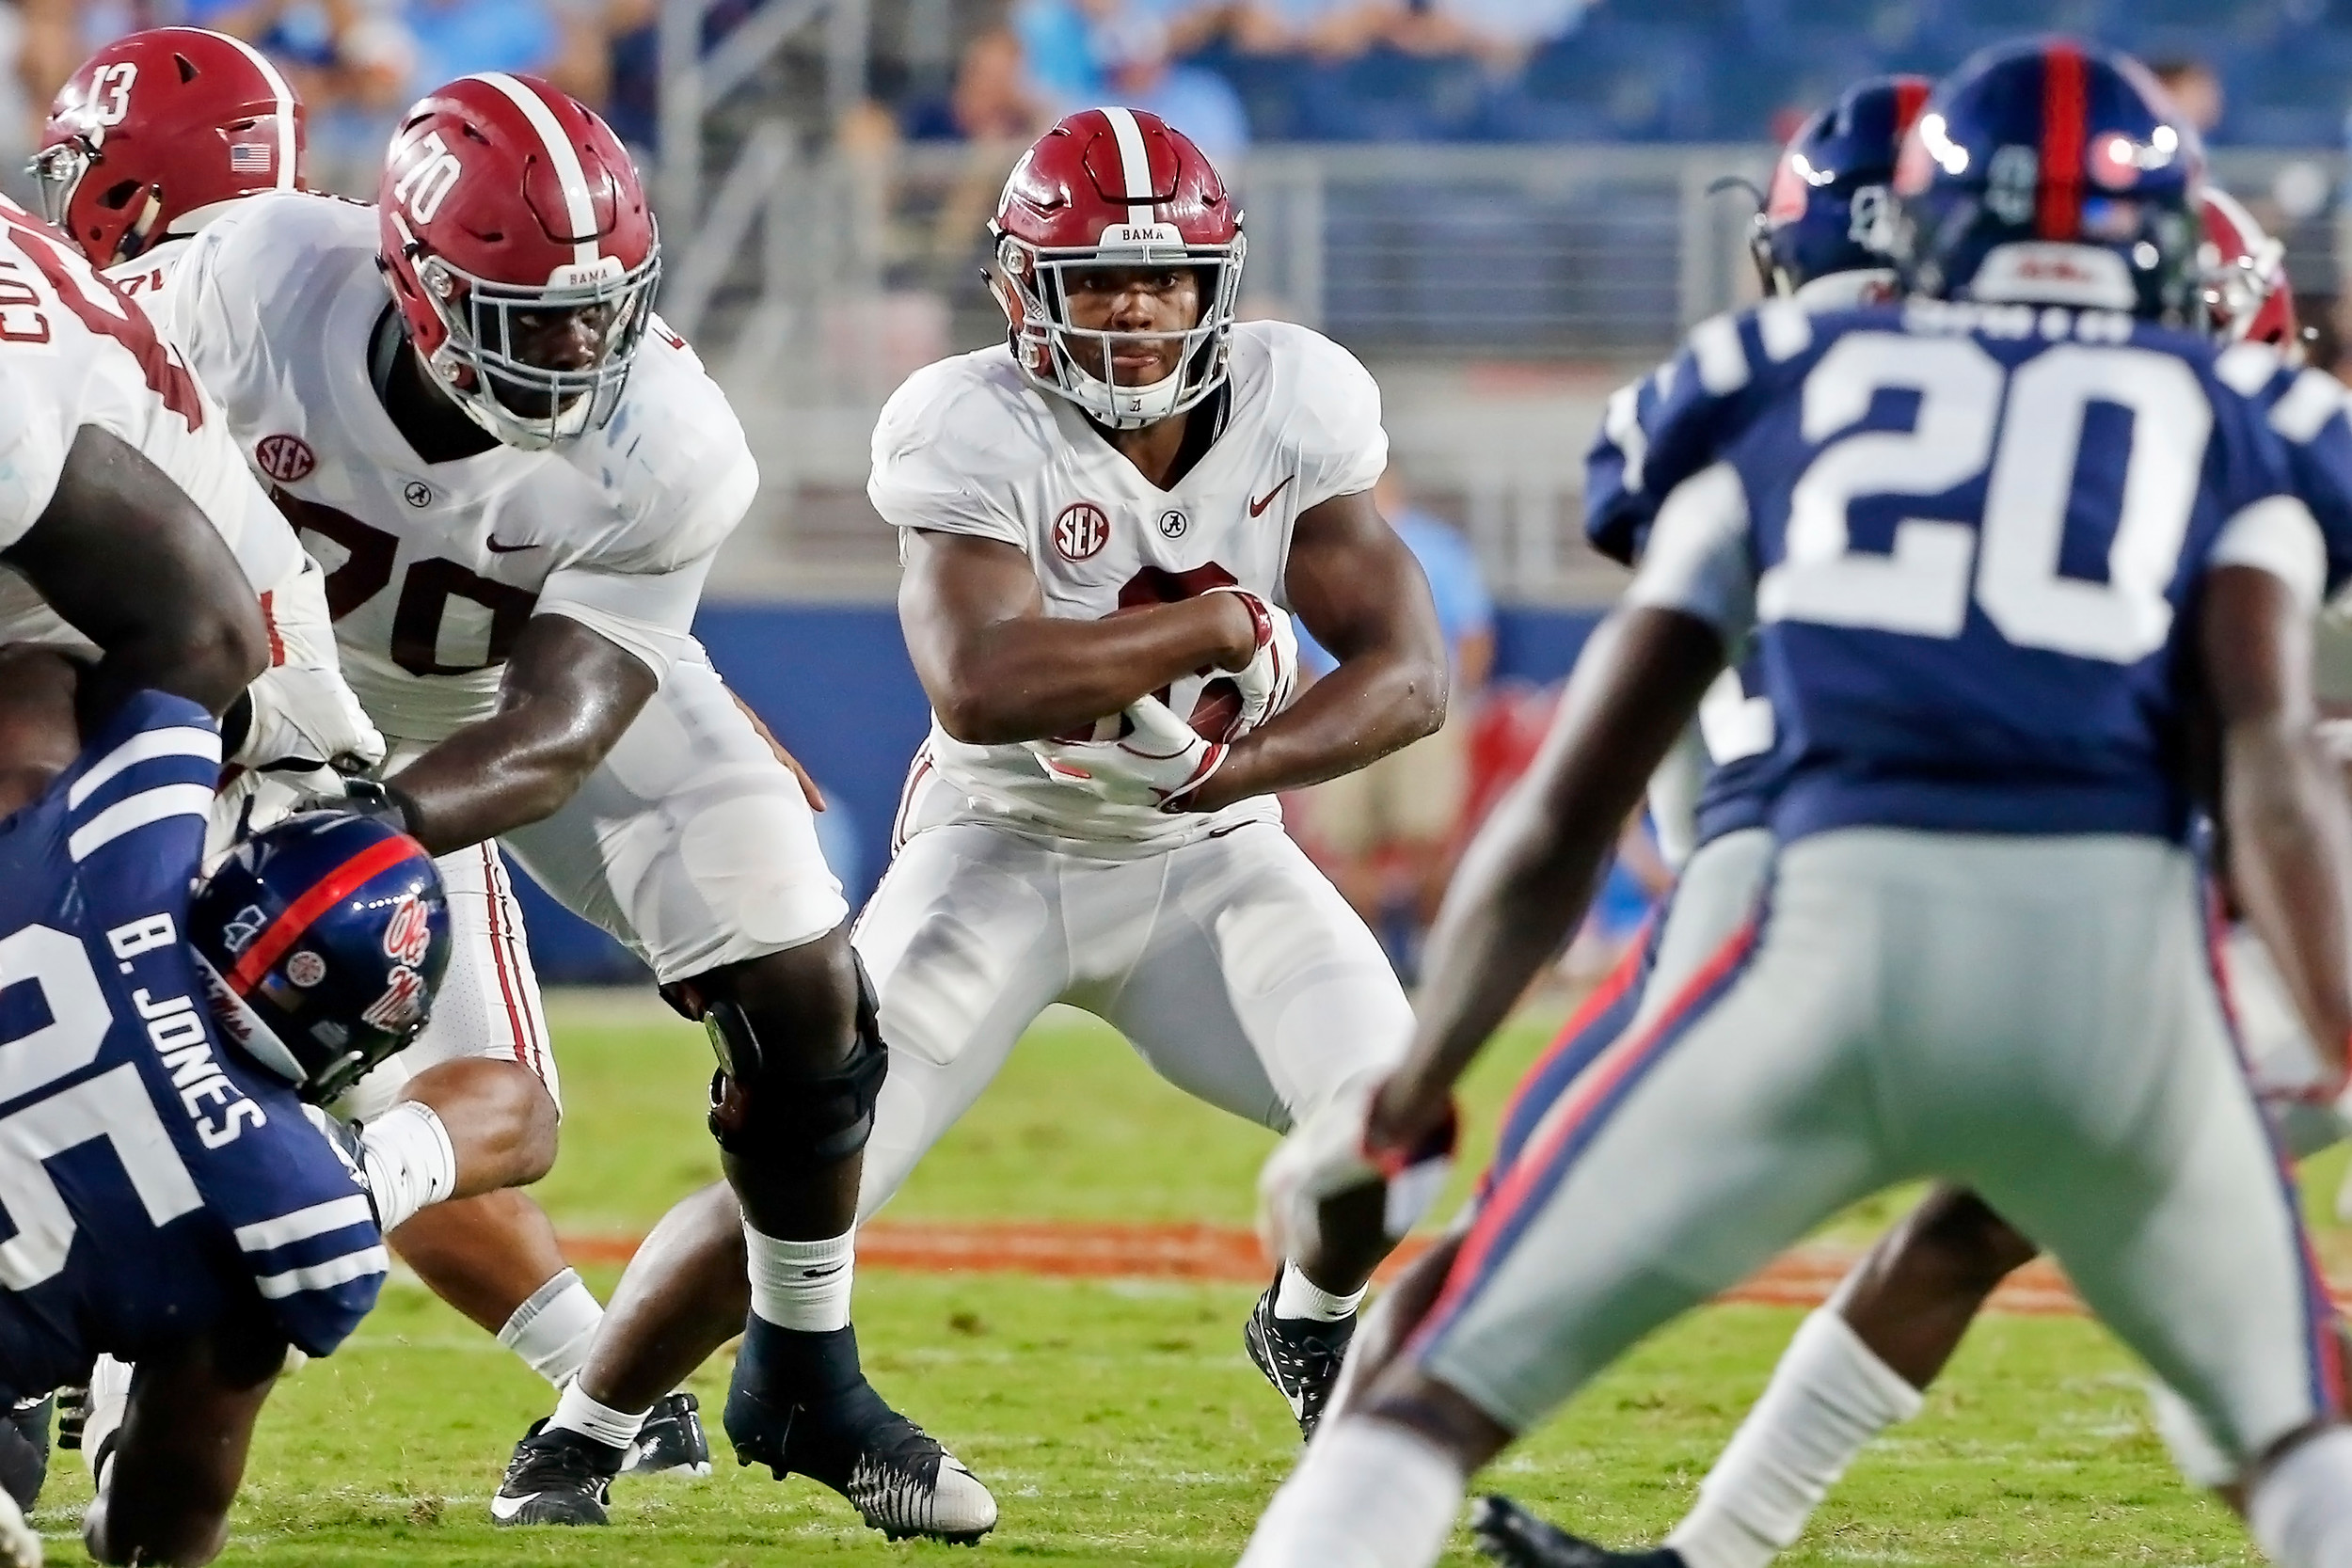 Alabama Crimson Tide running back Josh Jacobs (8) during the game between the University of Alabama and Ole Miss at Vaught-Hemingway Stadium. Jason Clark / Daily Mountain Eagle